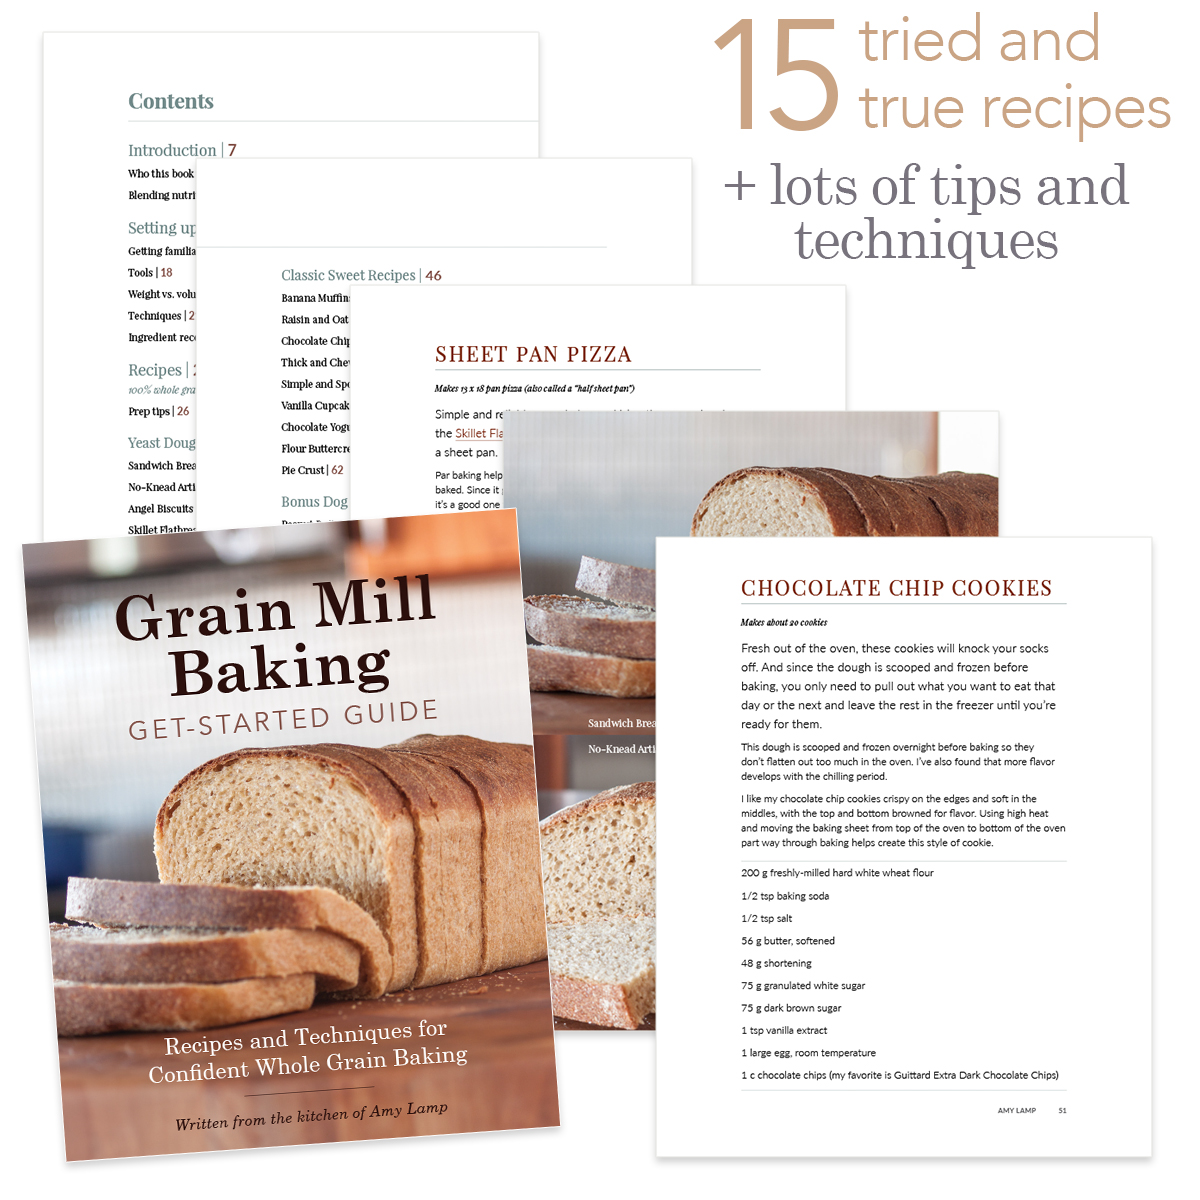 Grain Mill Baking Get-Started Guide PDF page samples